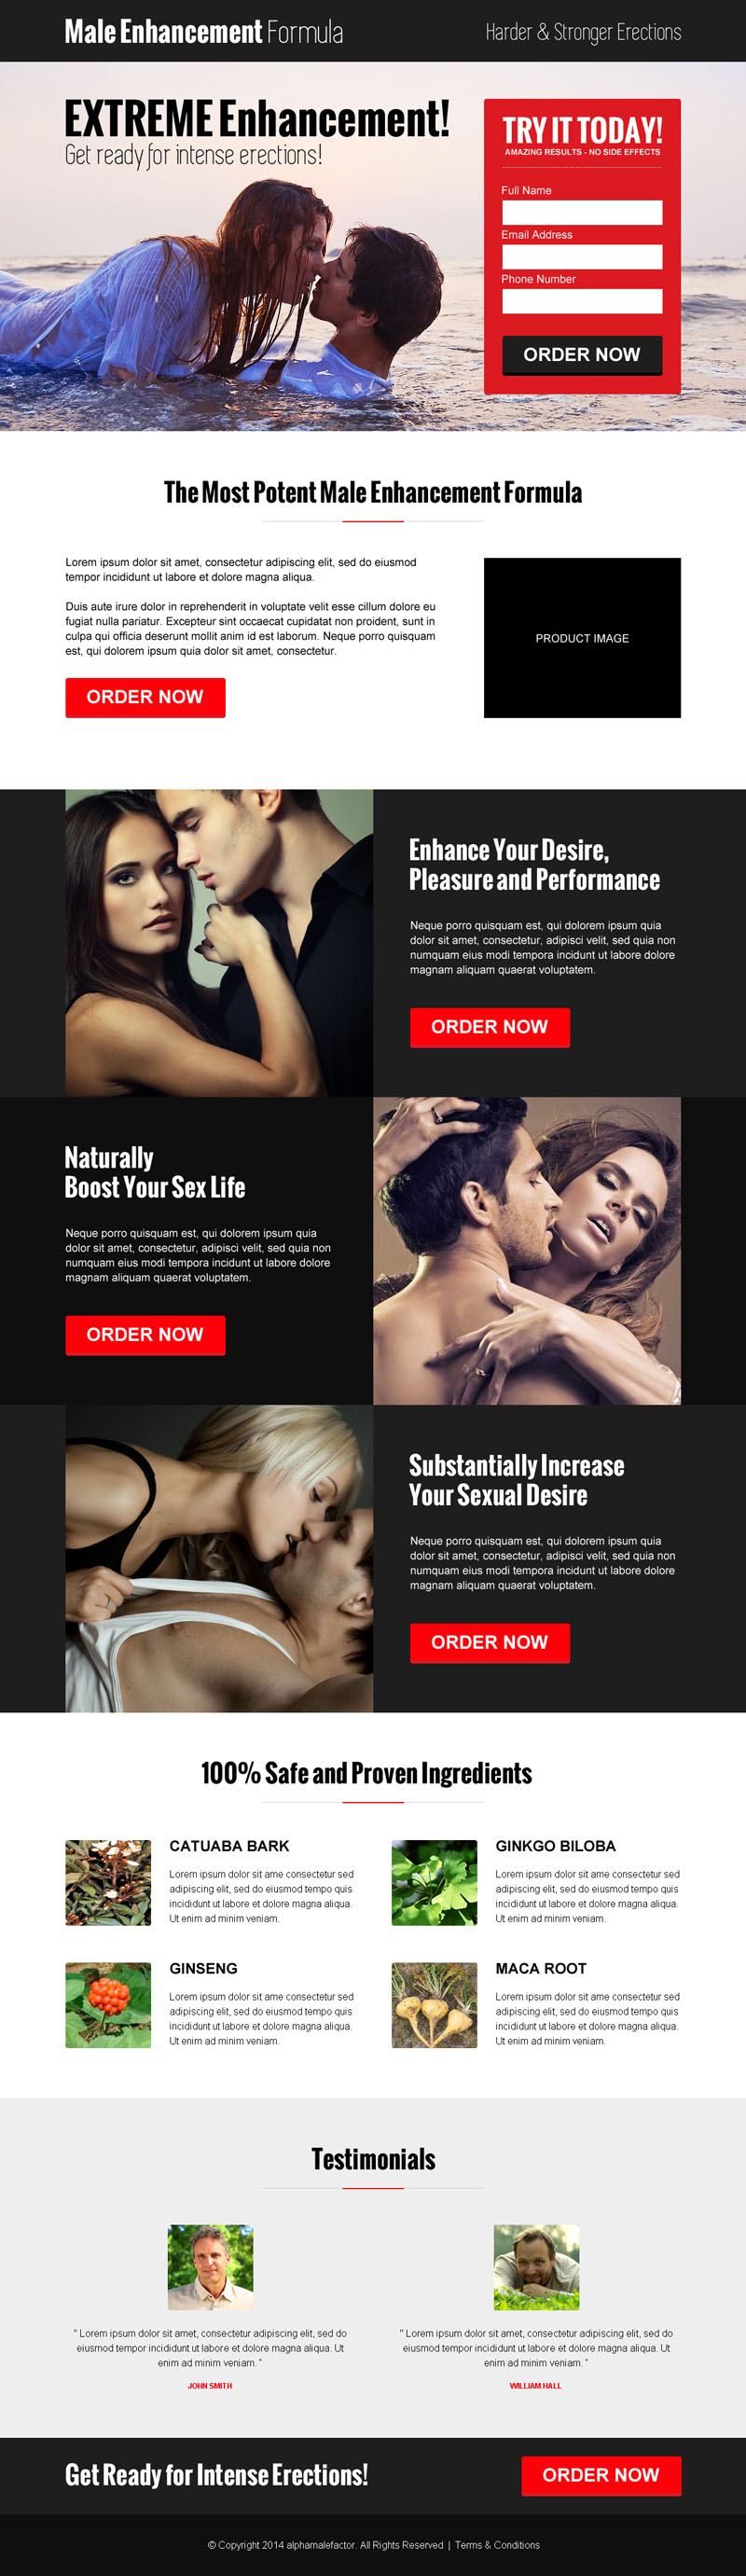 converting-male-enhancement-formula-product-selling-lead-capture-landing-page-design-template-017